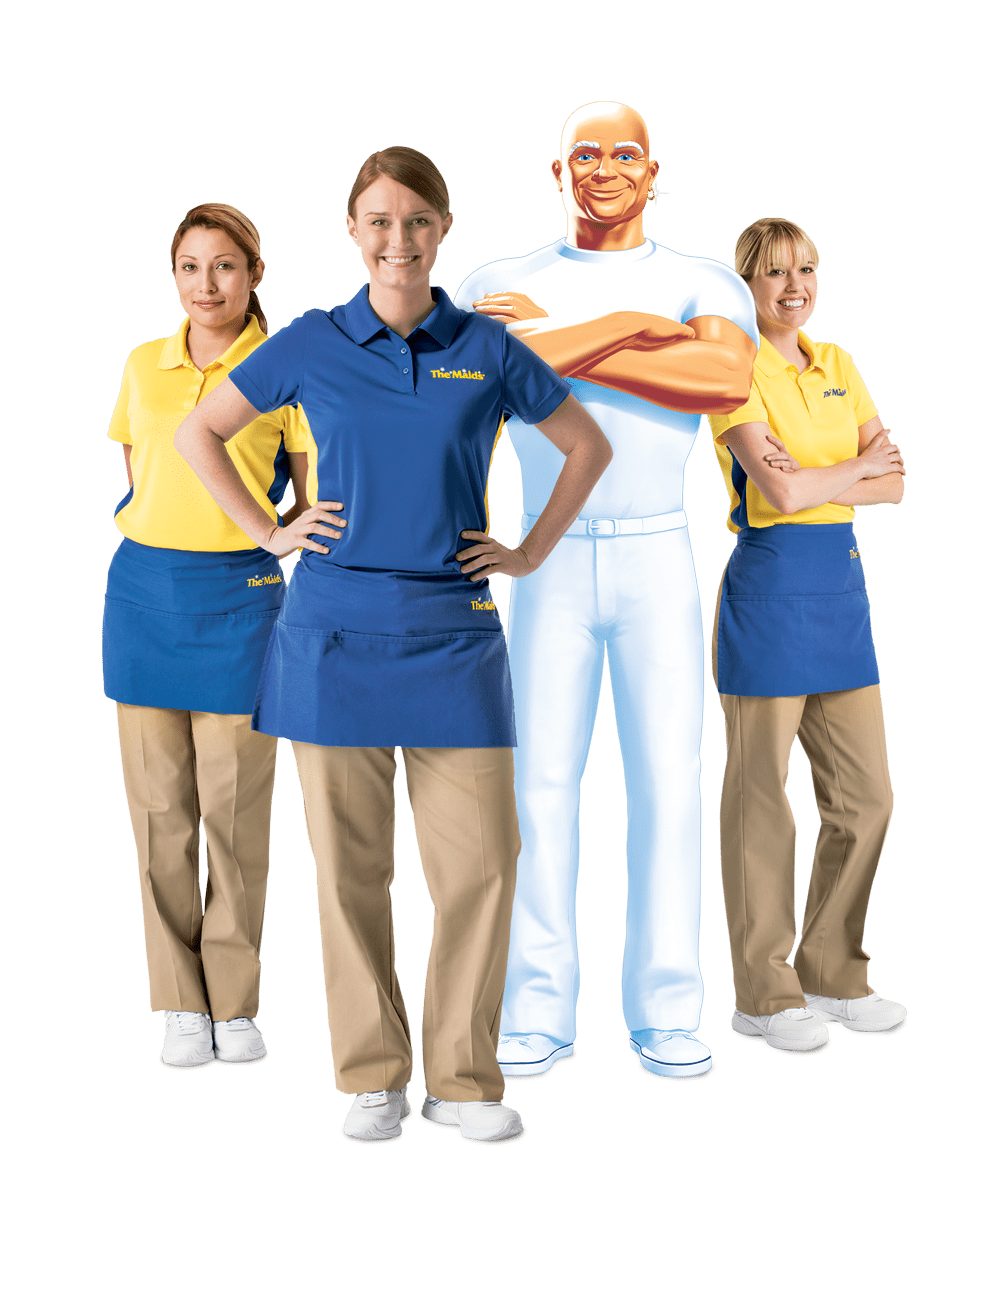 The Maids House Cleaning - The Maids in Hollywood Home Cleaning